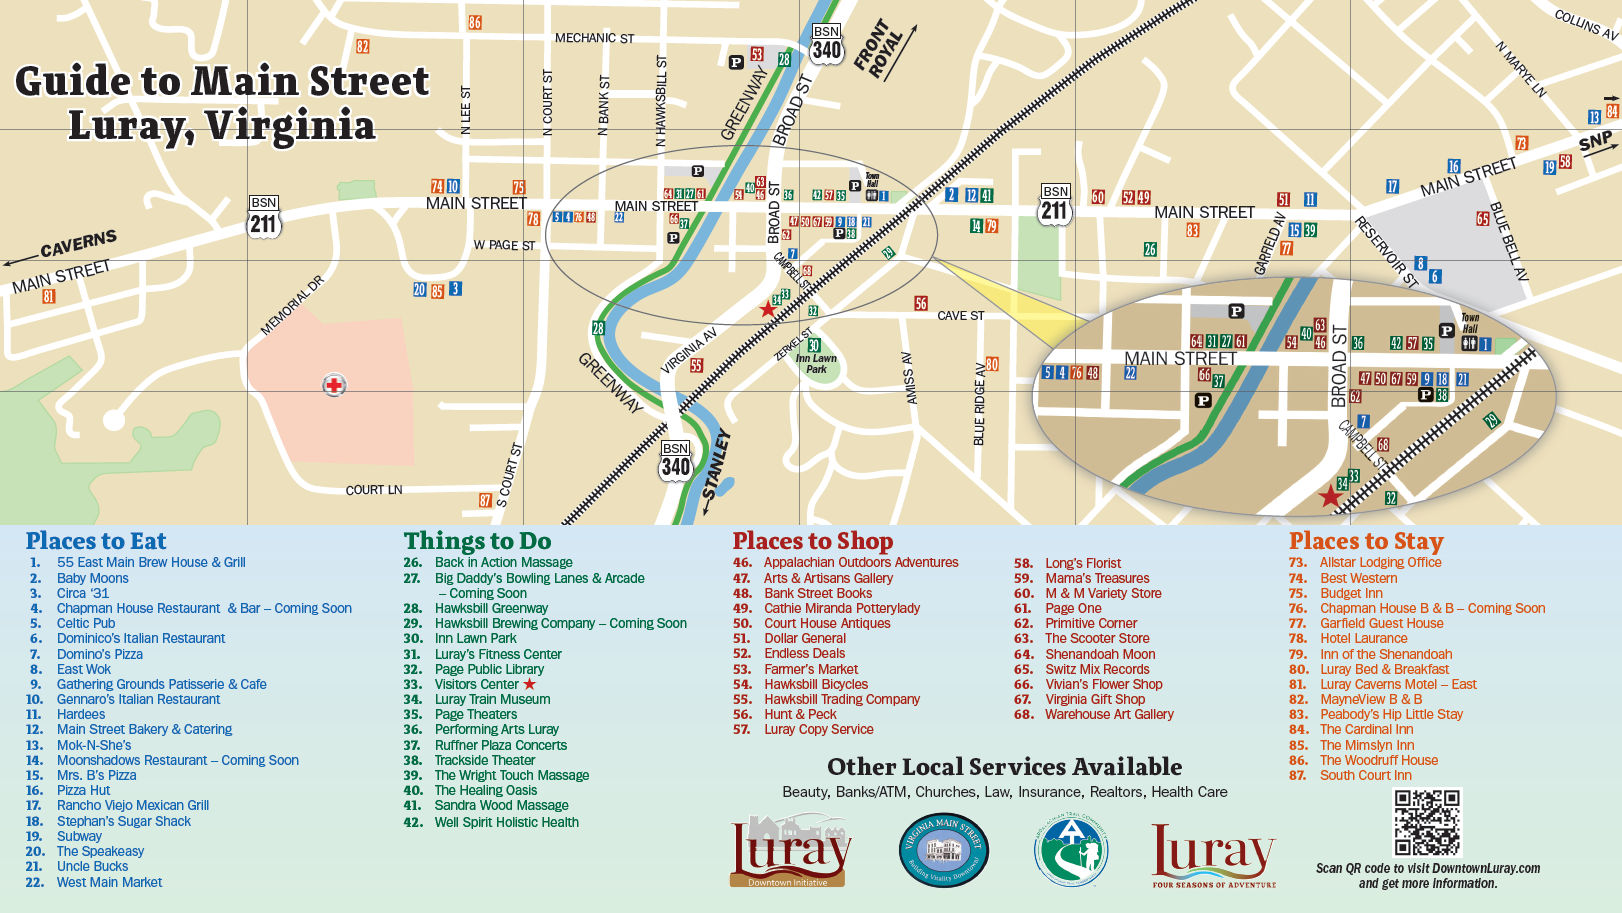 illustration Downtown Luray Visitor Map - Click to view full size image